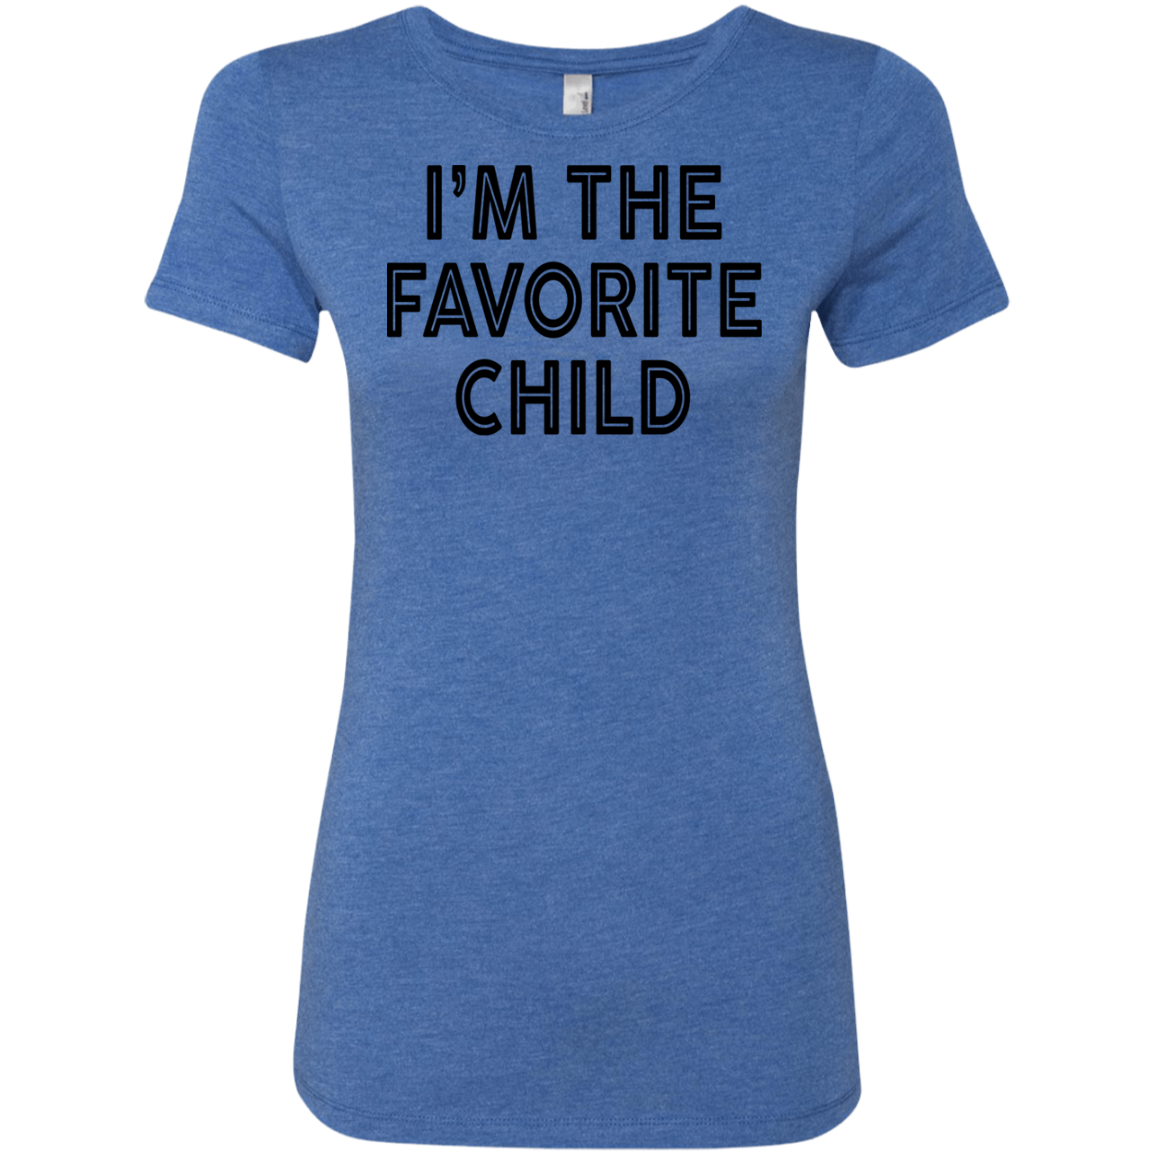 I'm The Favorite Child Women's Classic Tee